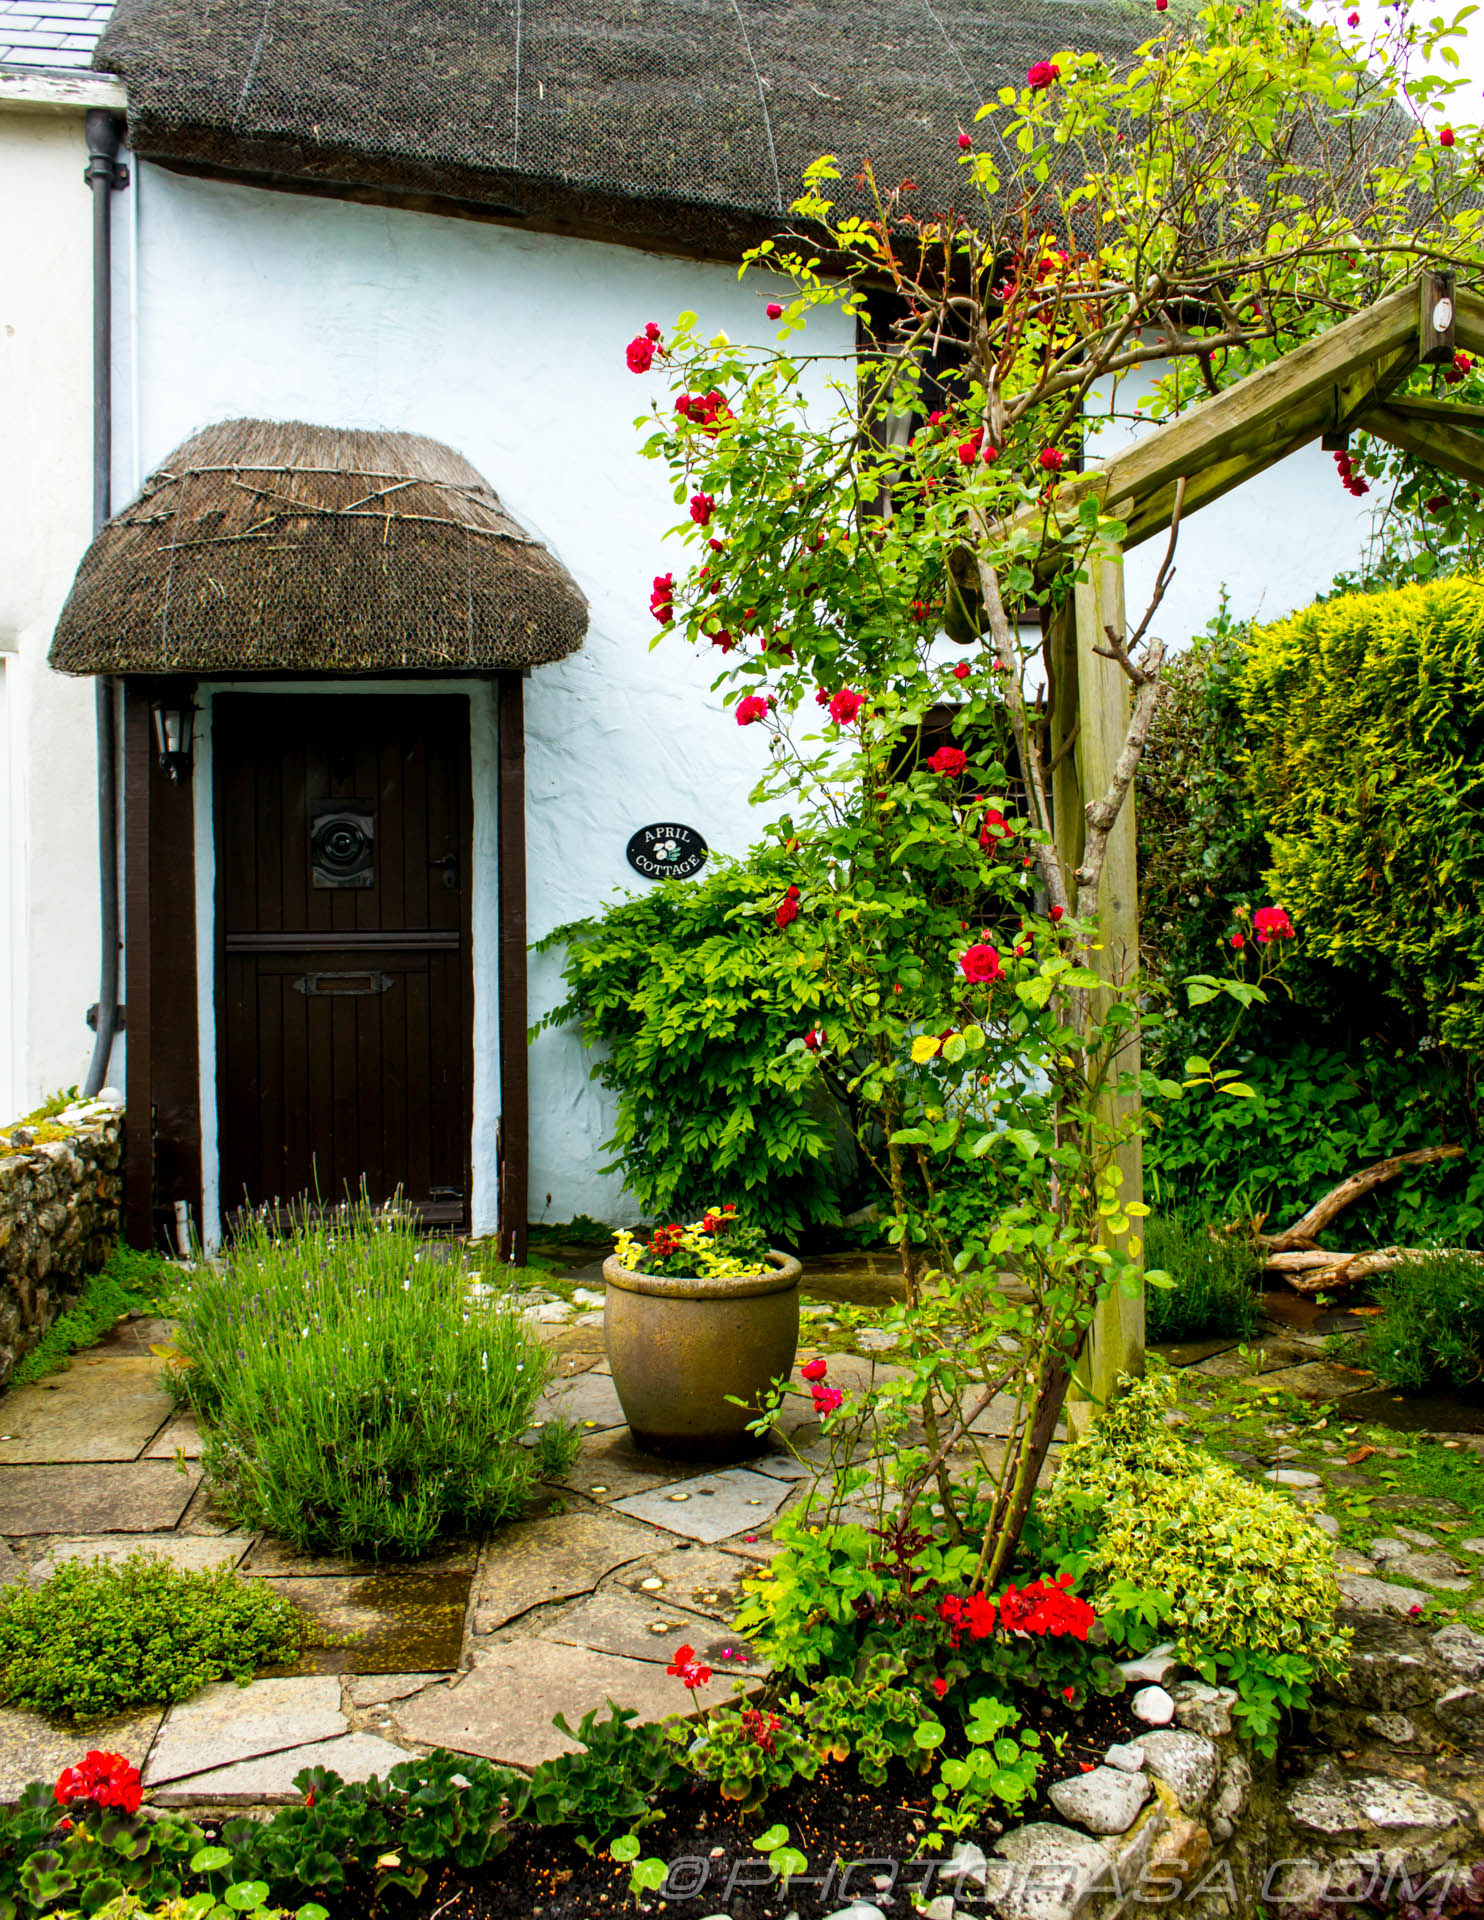 http://photorasa.com/lyme-regis/seaside-thatched-cottage/